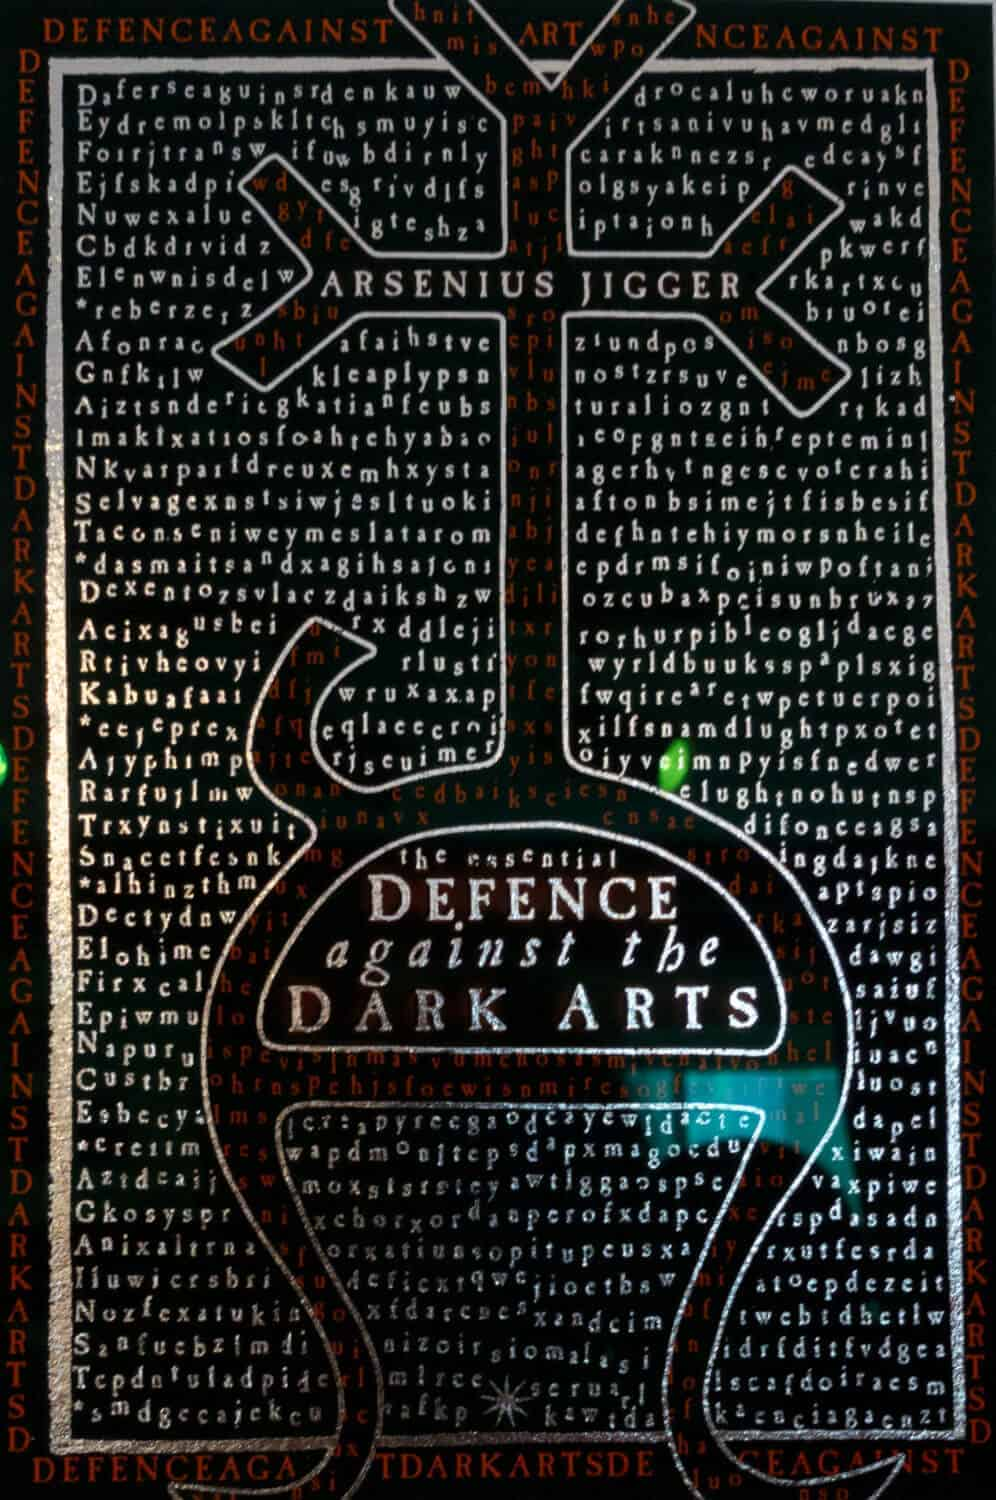 House of MinaLima Harry Potter gallery London DADA poster